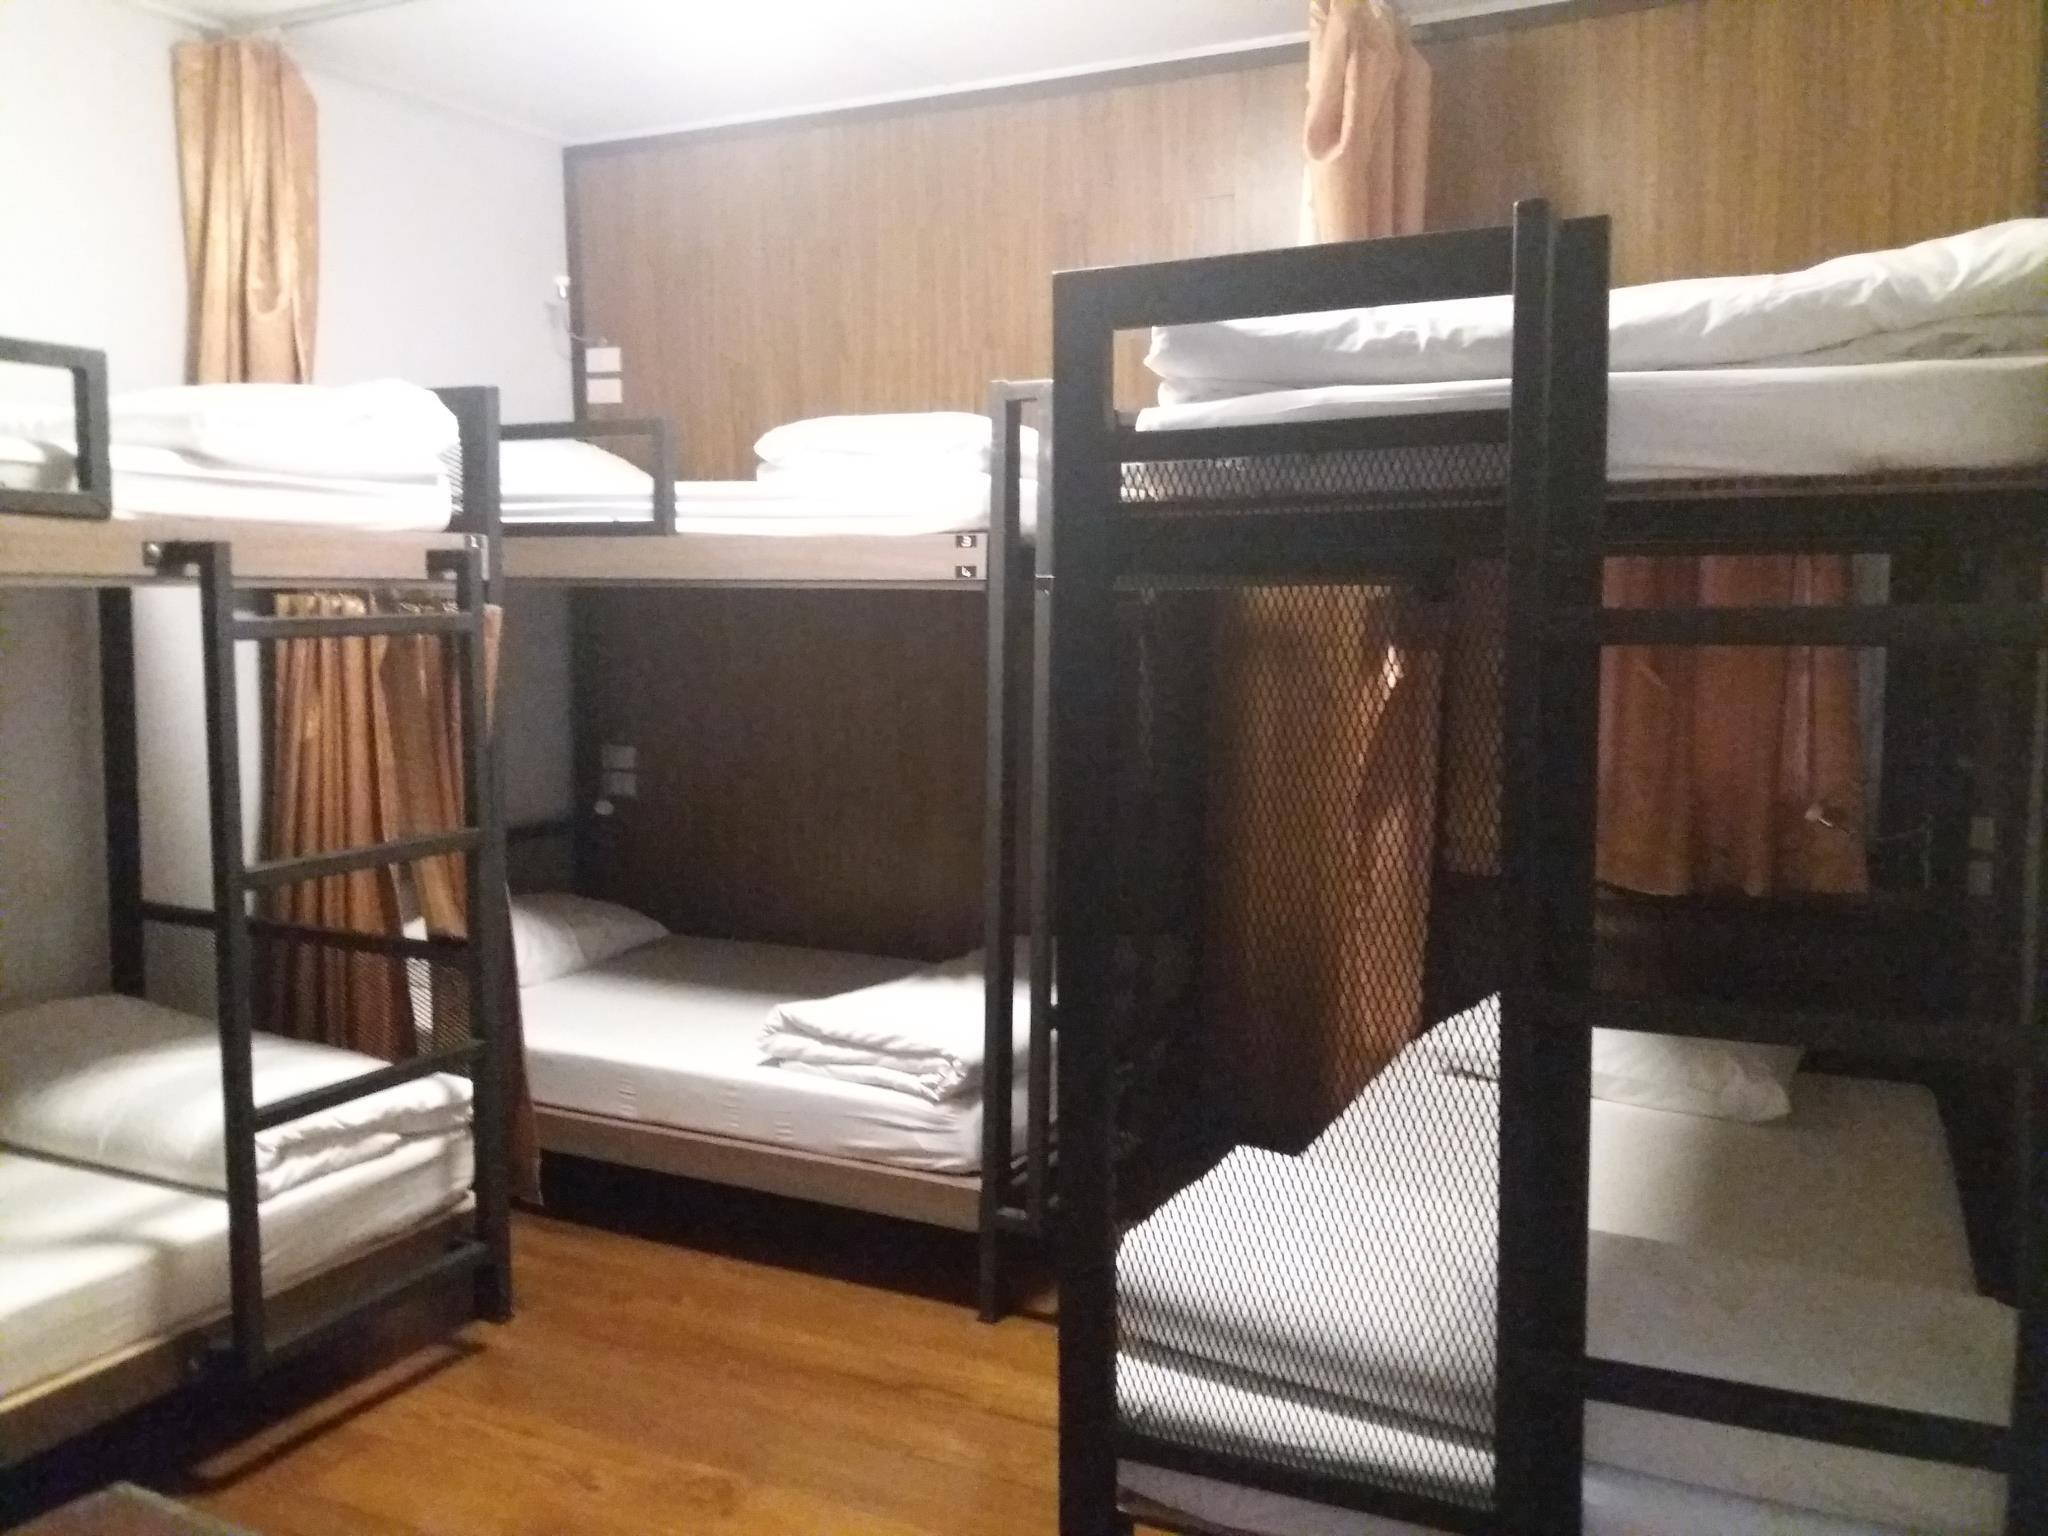 1 Person im 6-Bett-Schlafsaal – gemischt (1 Person in 6-Bed Dormitory - Mixed)